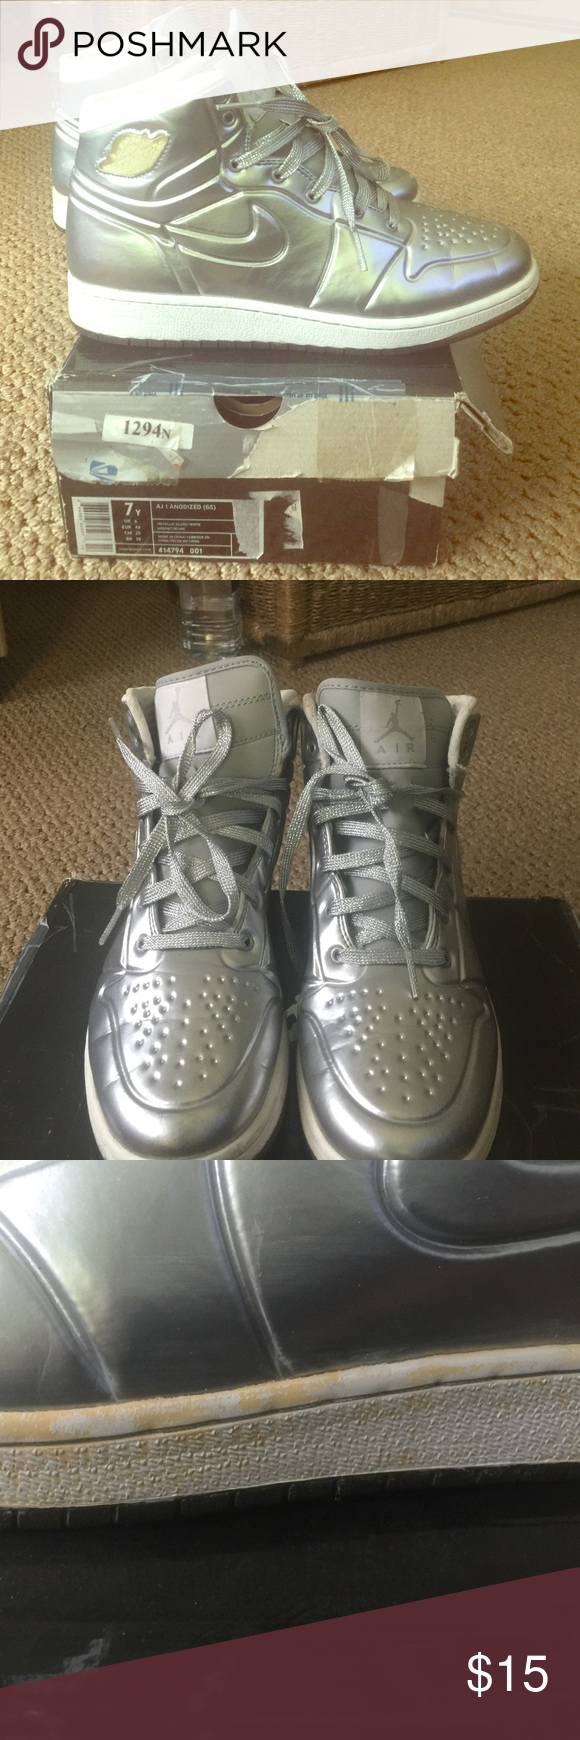 buy online 6ceec 48517 ... sweden air jordan 1 anodized metallic silver d sneakers and shoes  sneakers 5d0d8 b42a2